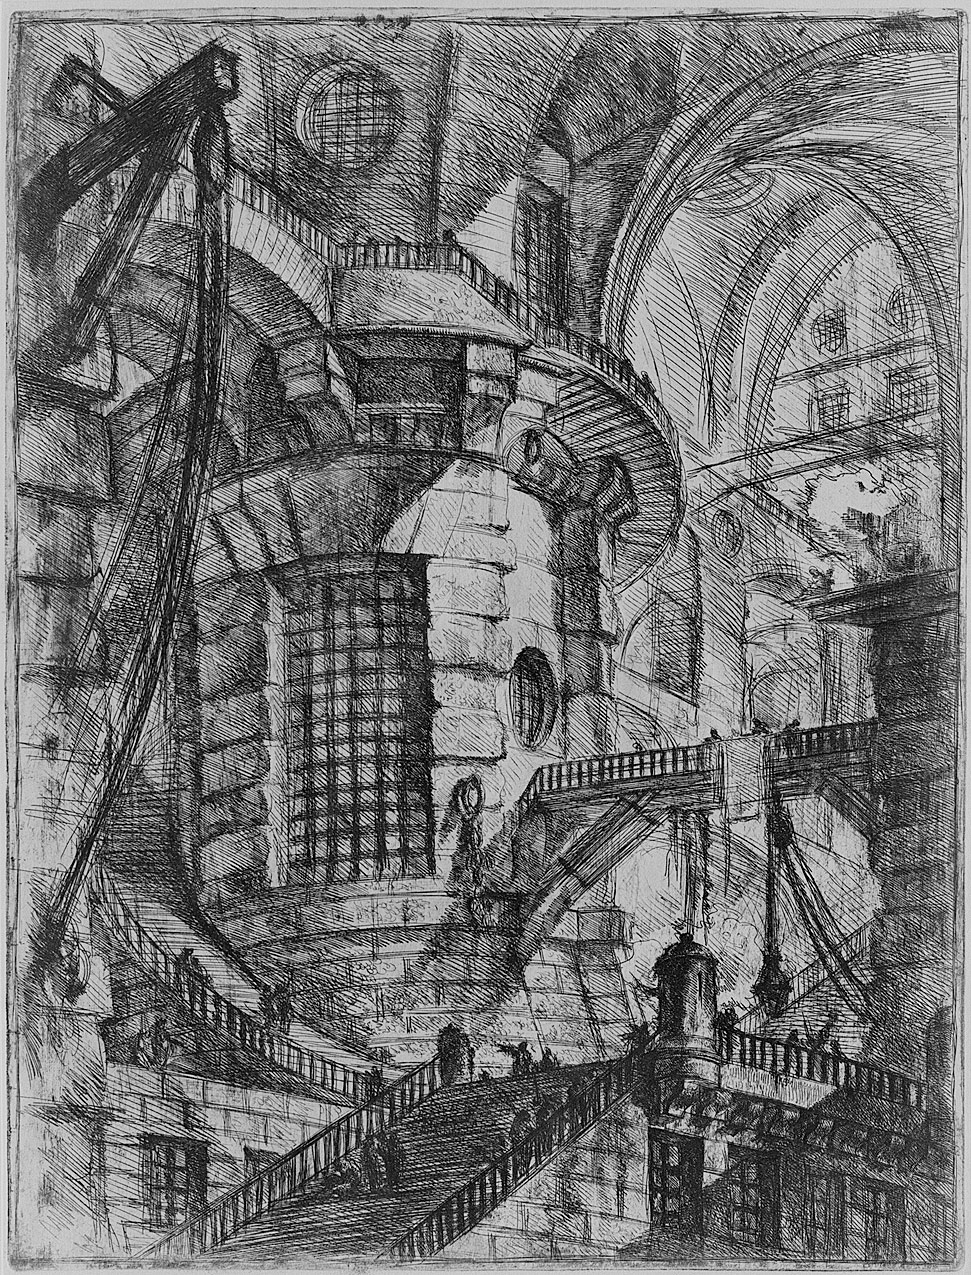 The Round Tower, from Carceri dinvenzione (Imaginary Prisons)